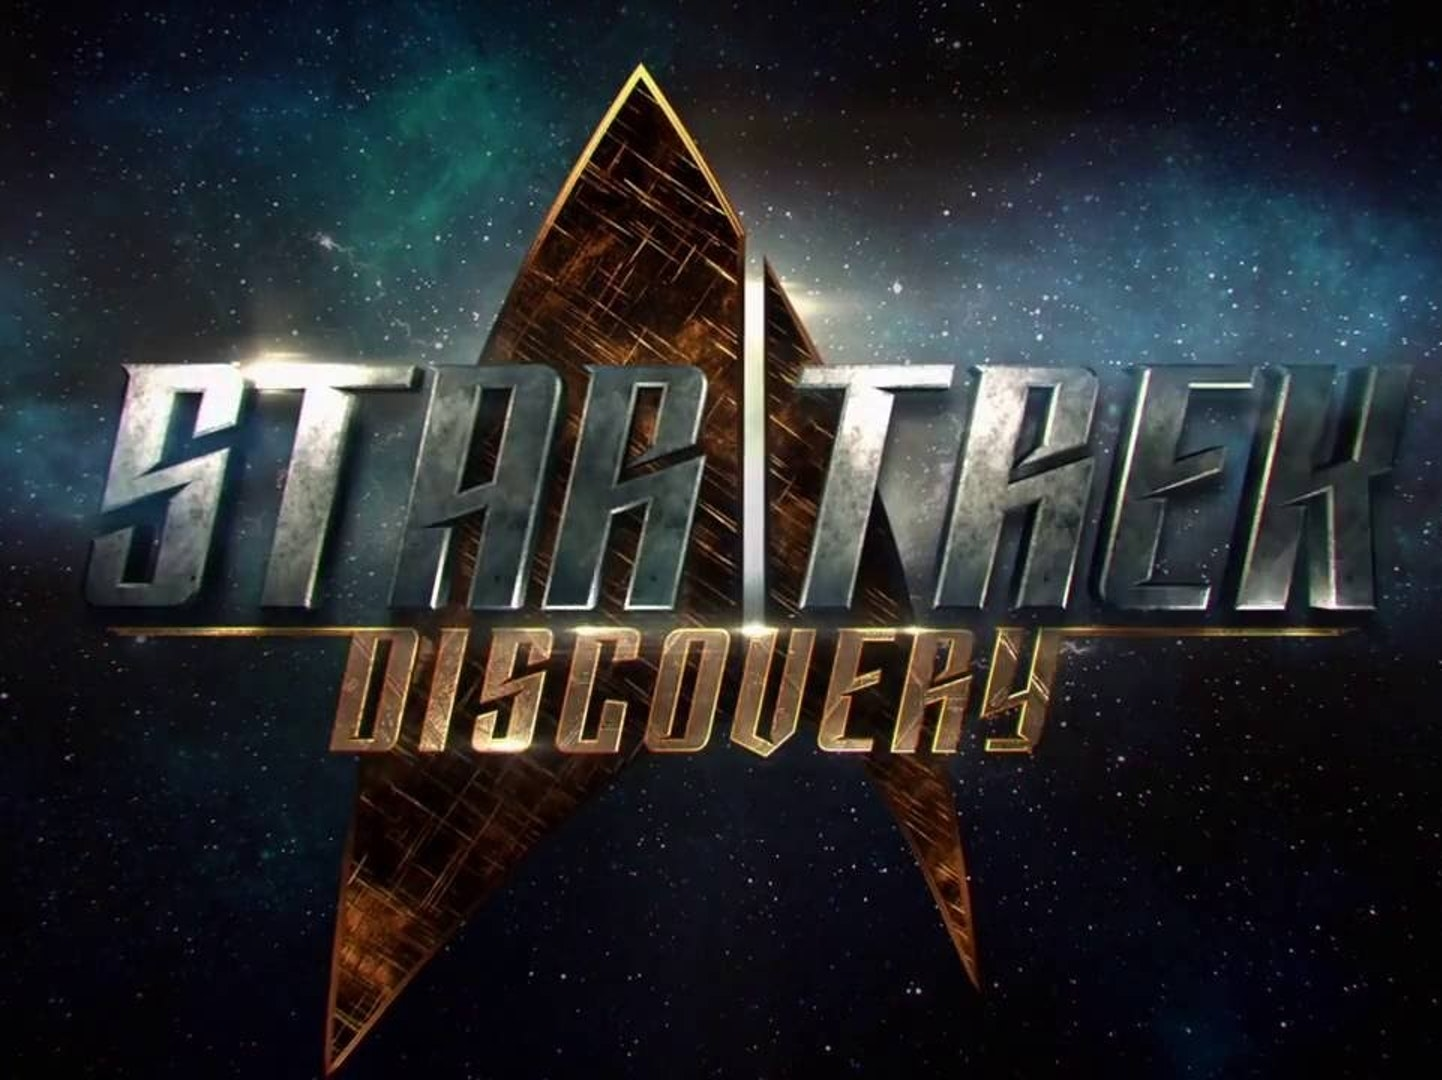 Everything We Know About 'Star Trek: Discovery'